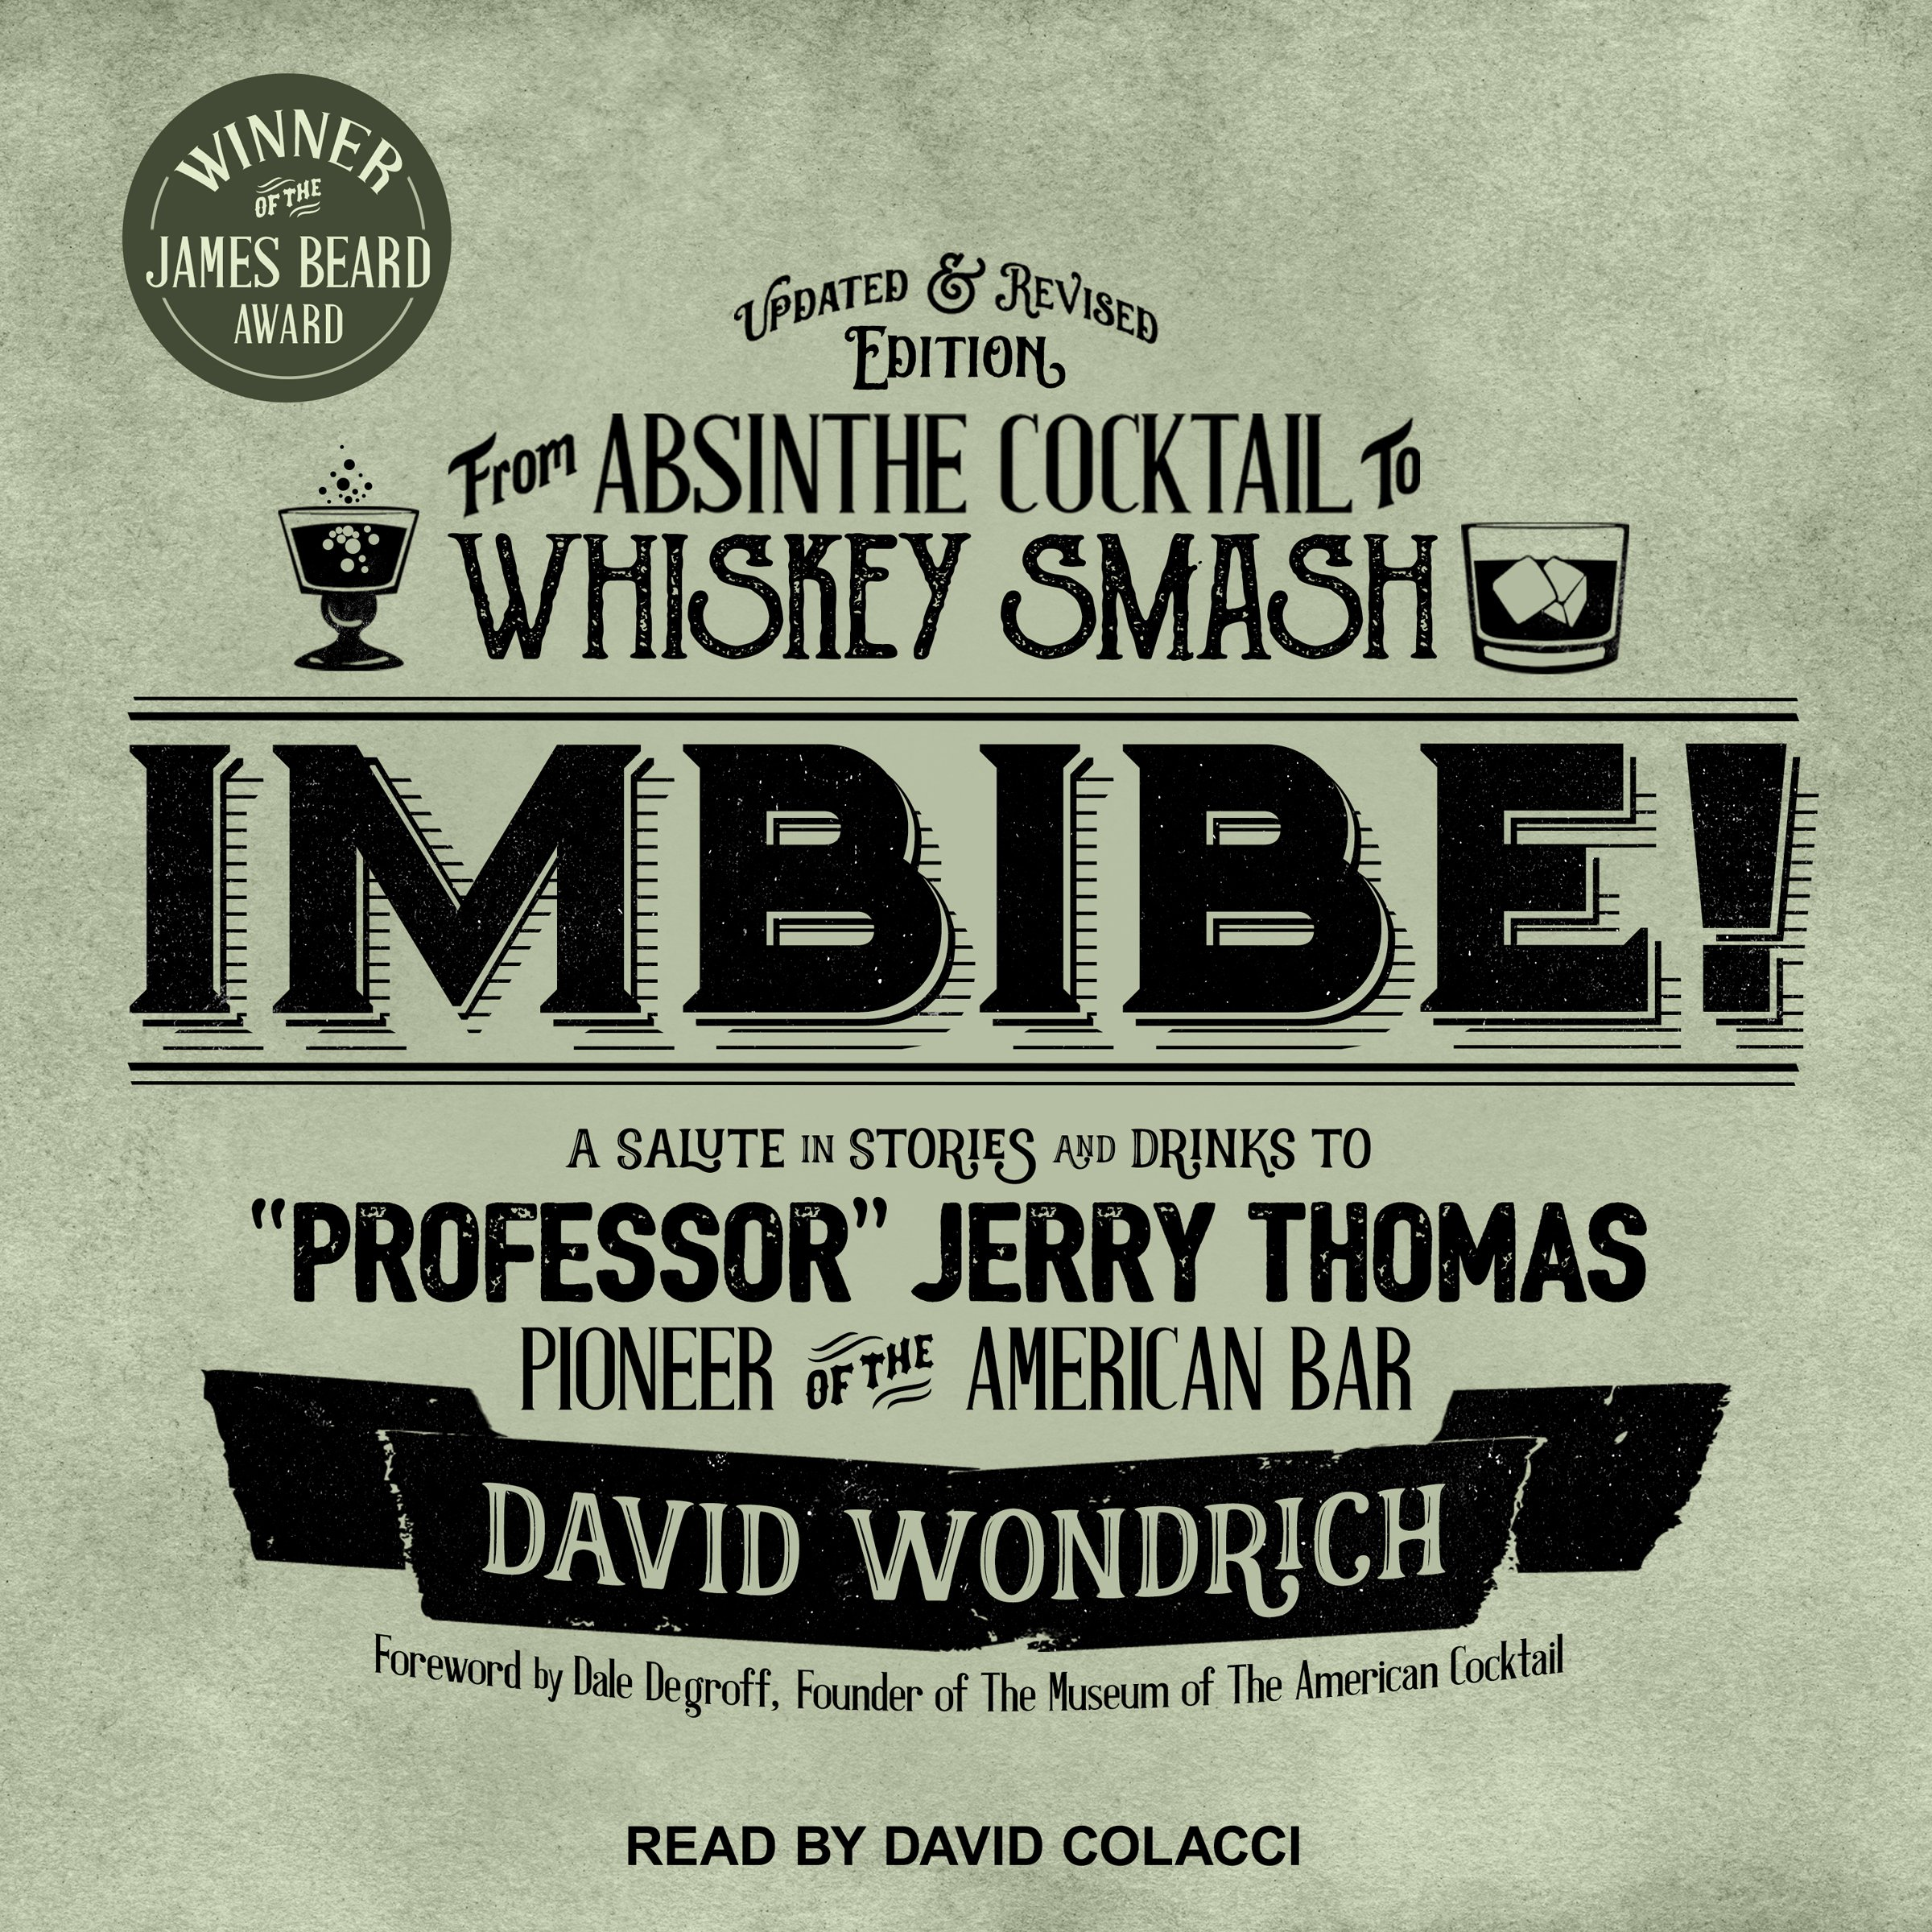 Imbibe! Updated and Revised Edition: From Absinthe Cocktail to Whiskey Smash a Salute in Stories and Drinks to 'Professor' Jerry Thomas Pioneer of the American Bar